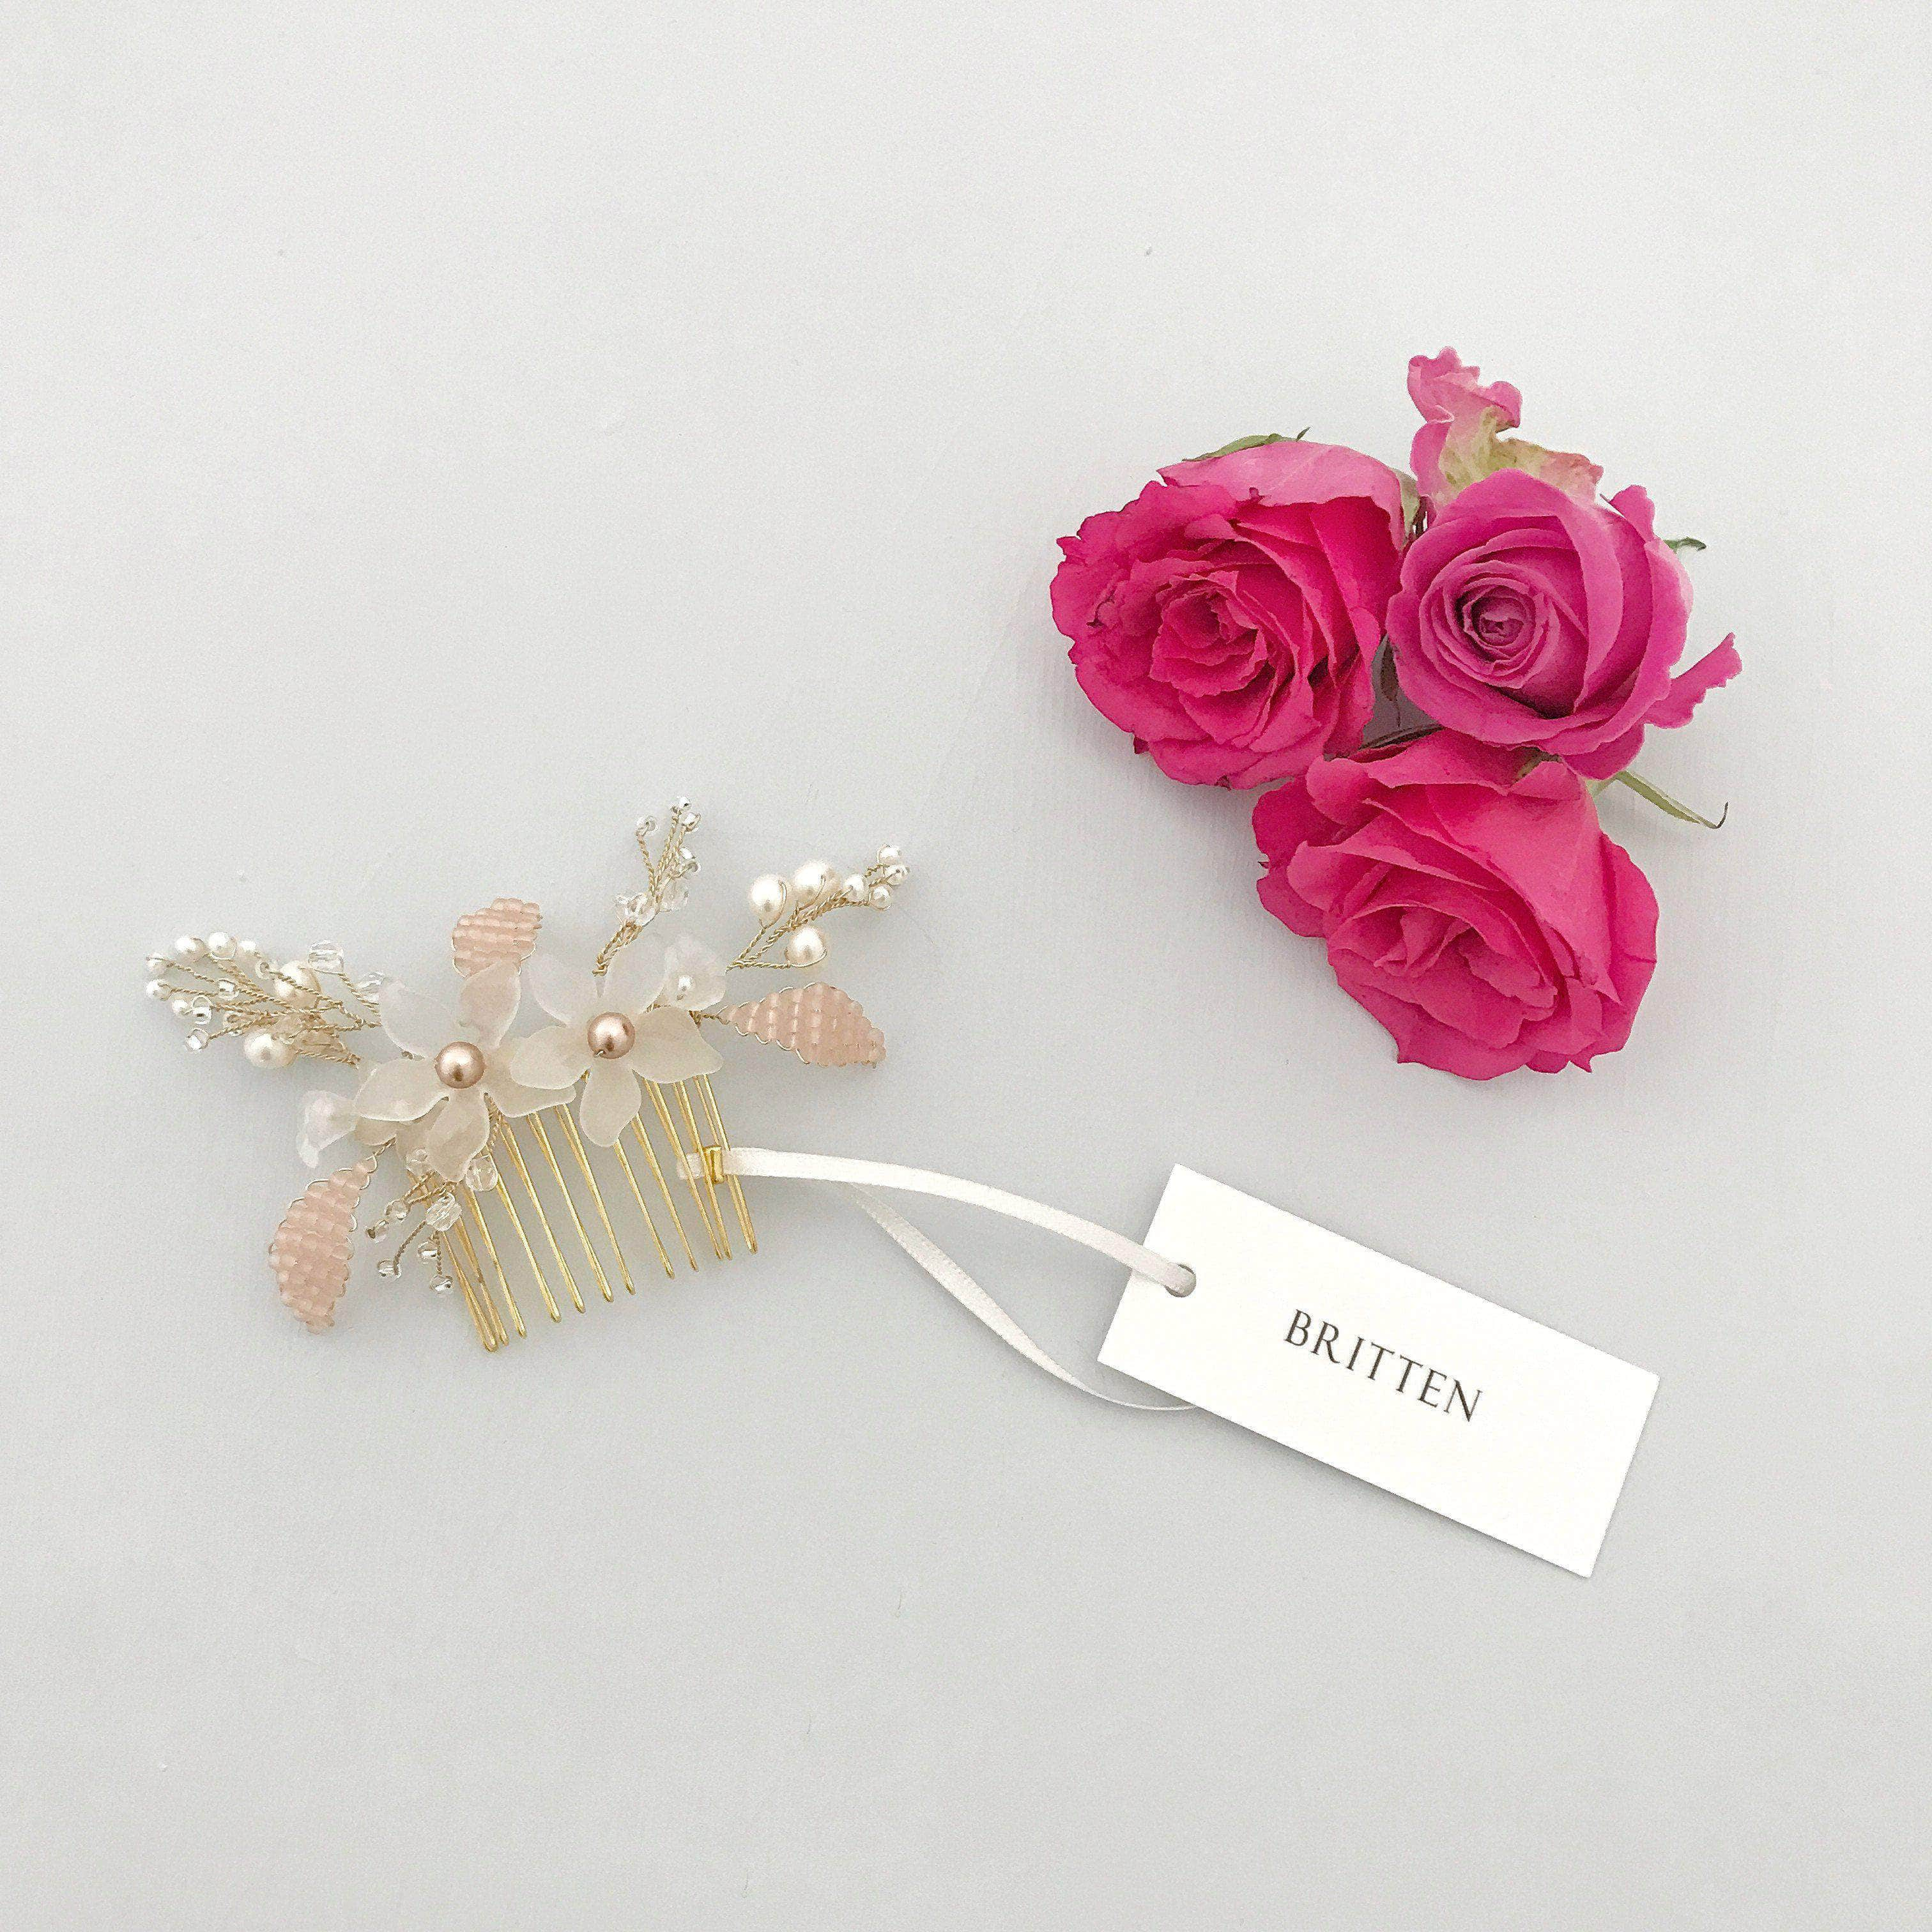 Floral Wedding Hair Comb By Britten: Gold And Blush Floral Wedding Hair Comb